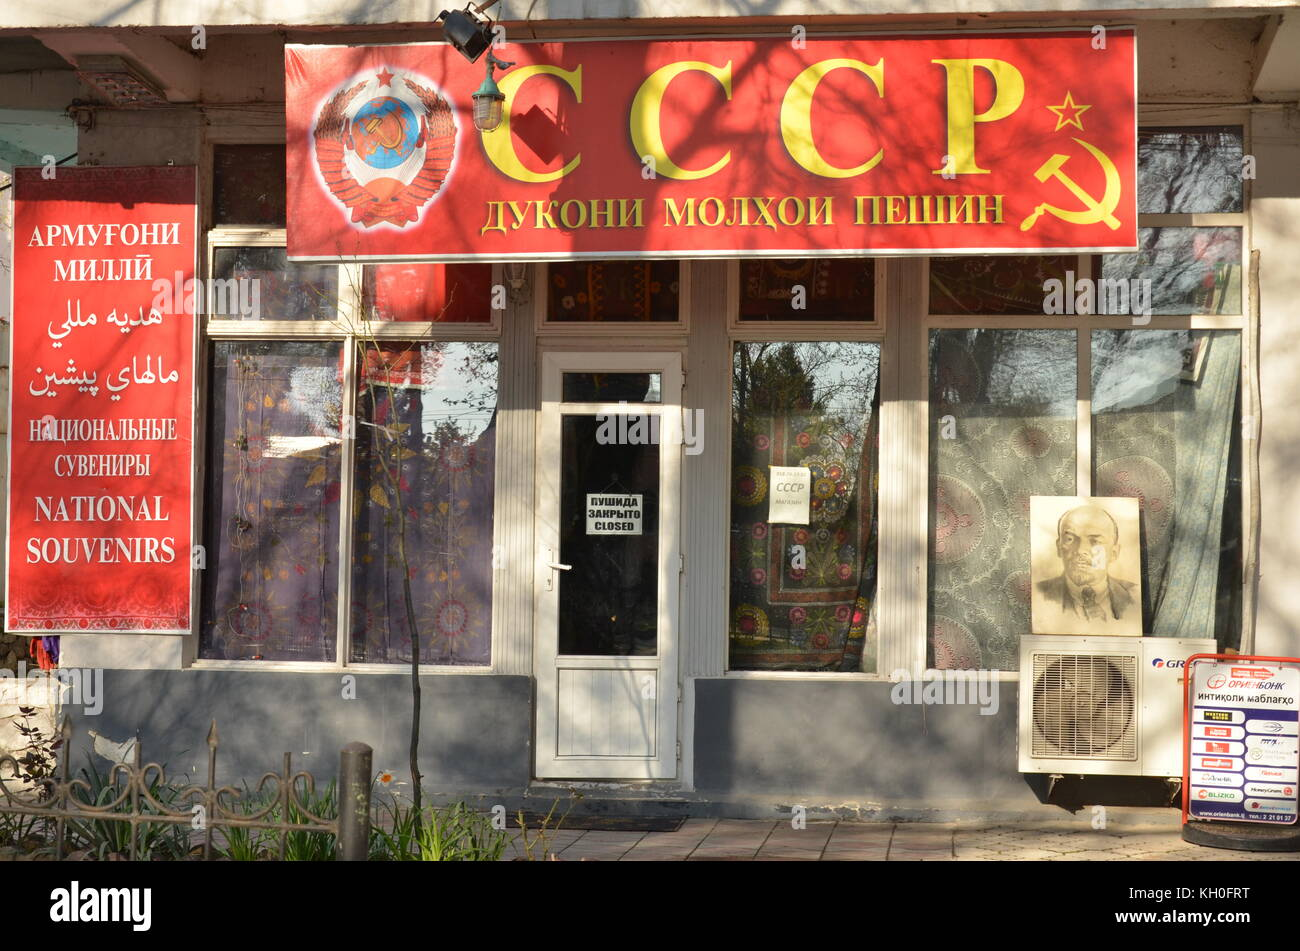 Factory Hammer and Sickle. Sickle and Hammer Factory, Moscow